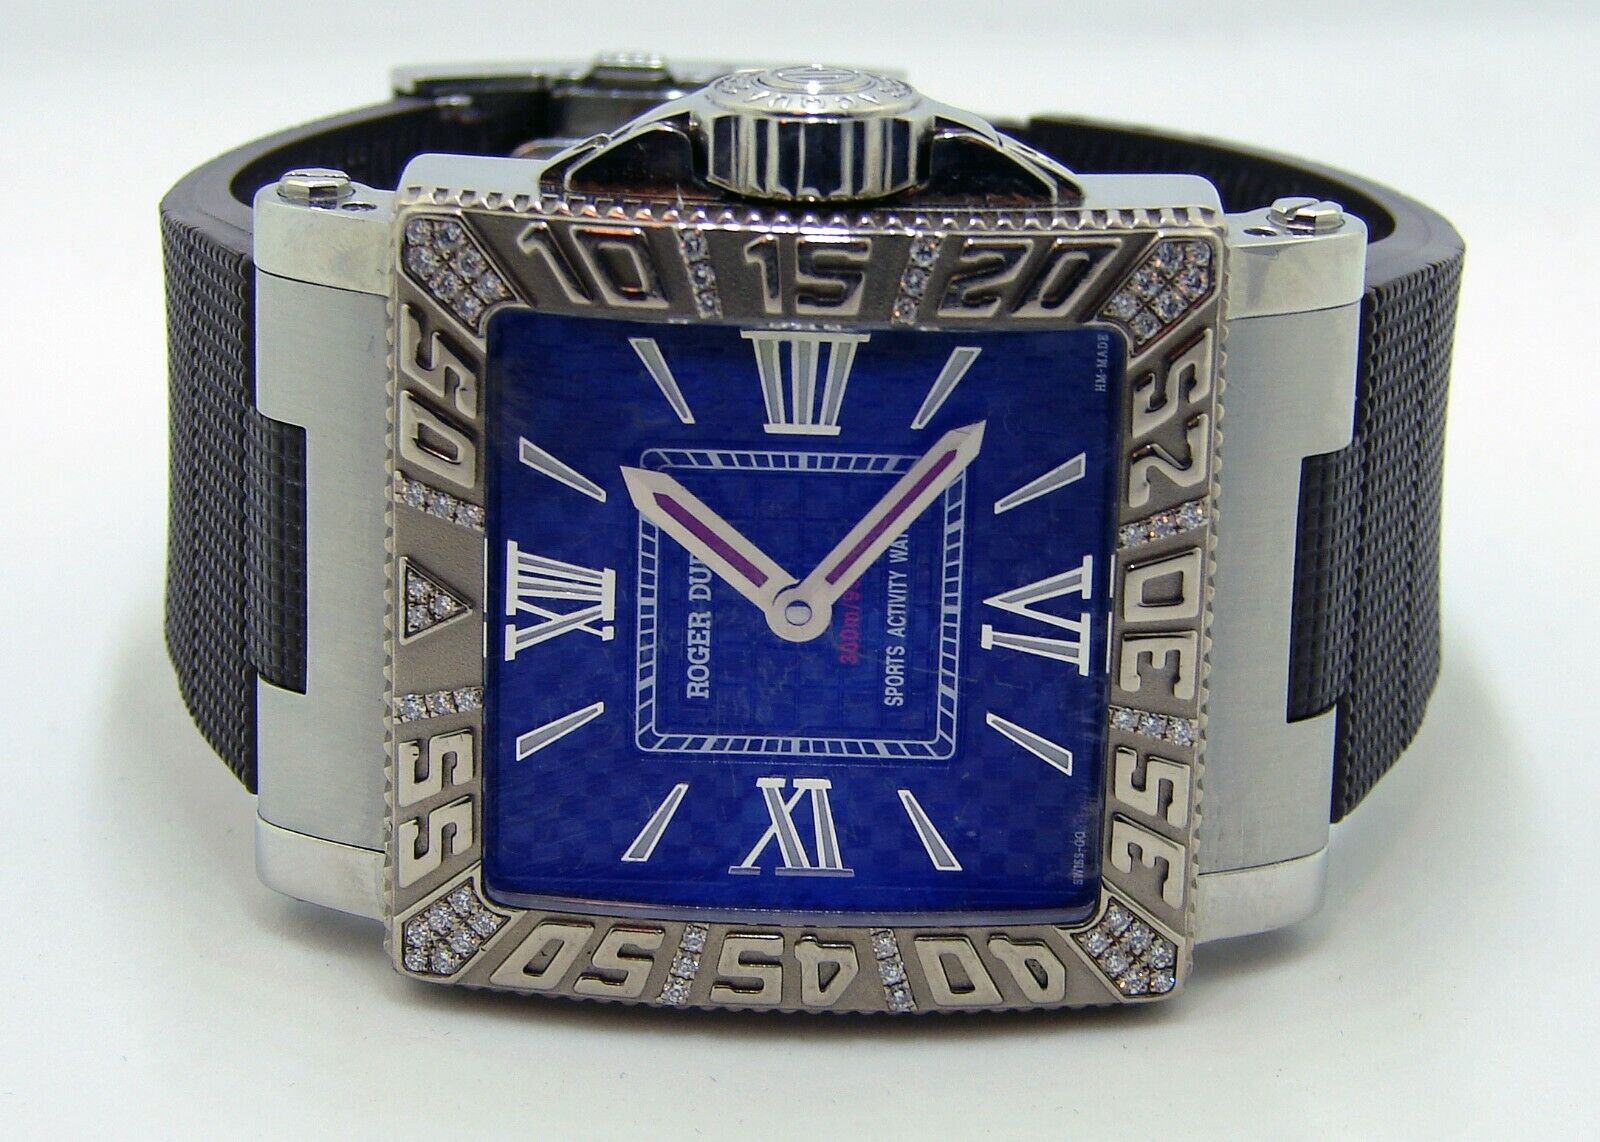 Roger Dubuis Aqua Mare Men's Watch with Factory 18k Gold and Diamond Bezel 38mm - watch picture 1